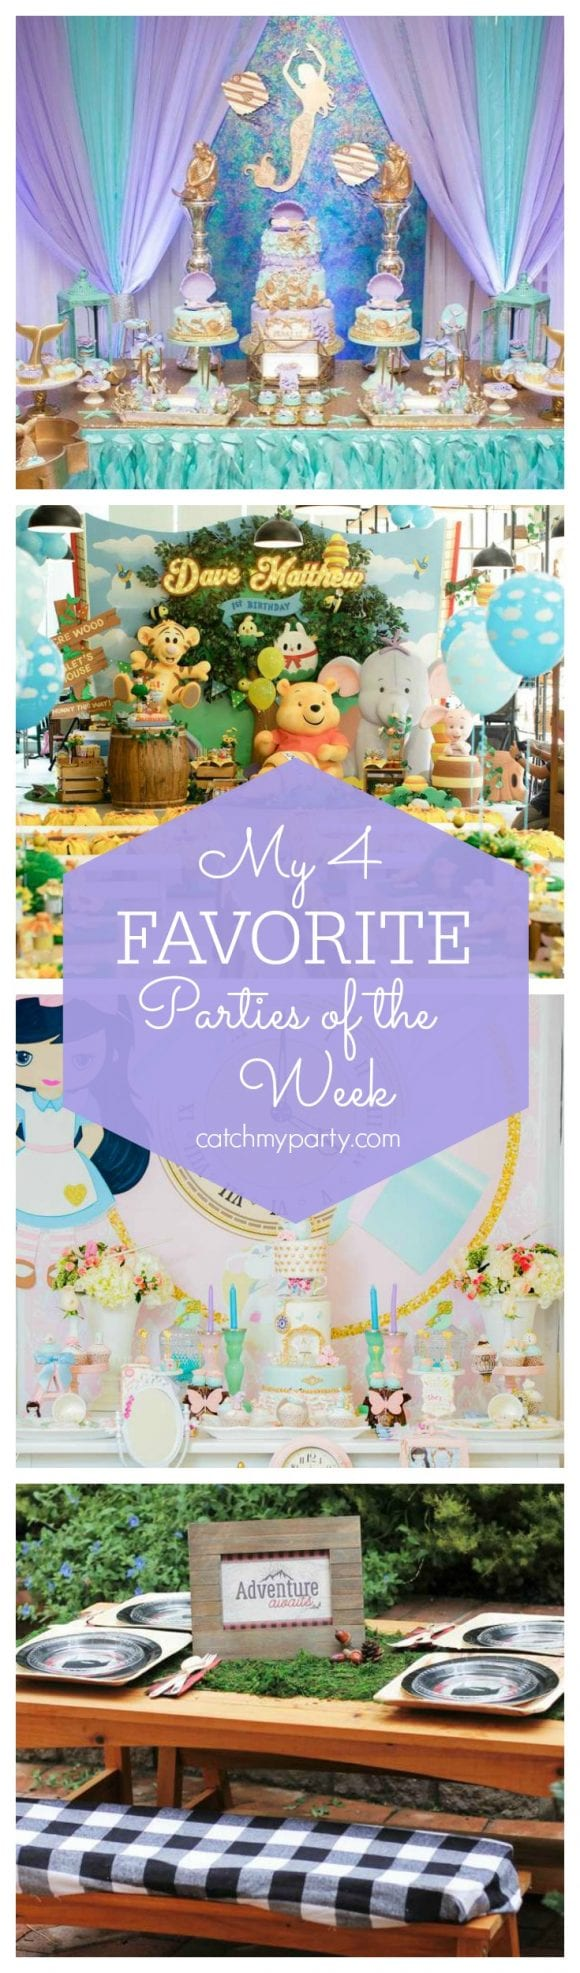 My favorite parties this week include a pretty Under the Sea baby shower, a Pooh Bear birthday, a pretty Alice in Wonderland party and a fun Lumberjack birthday | CatchMyParty.com